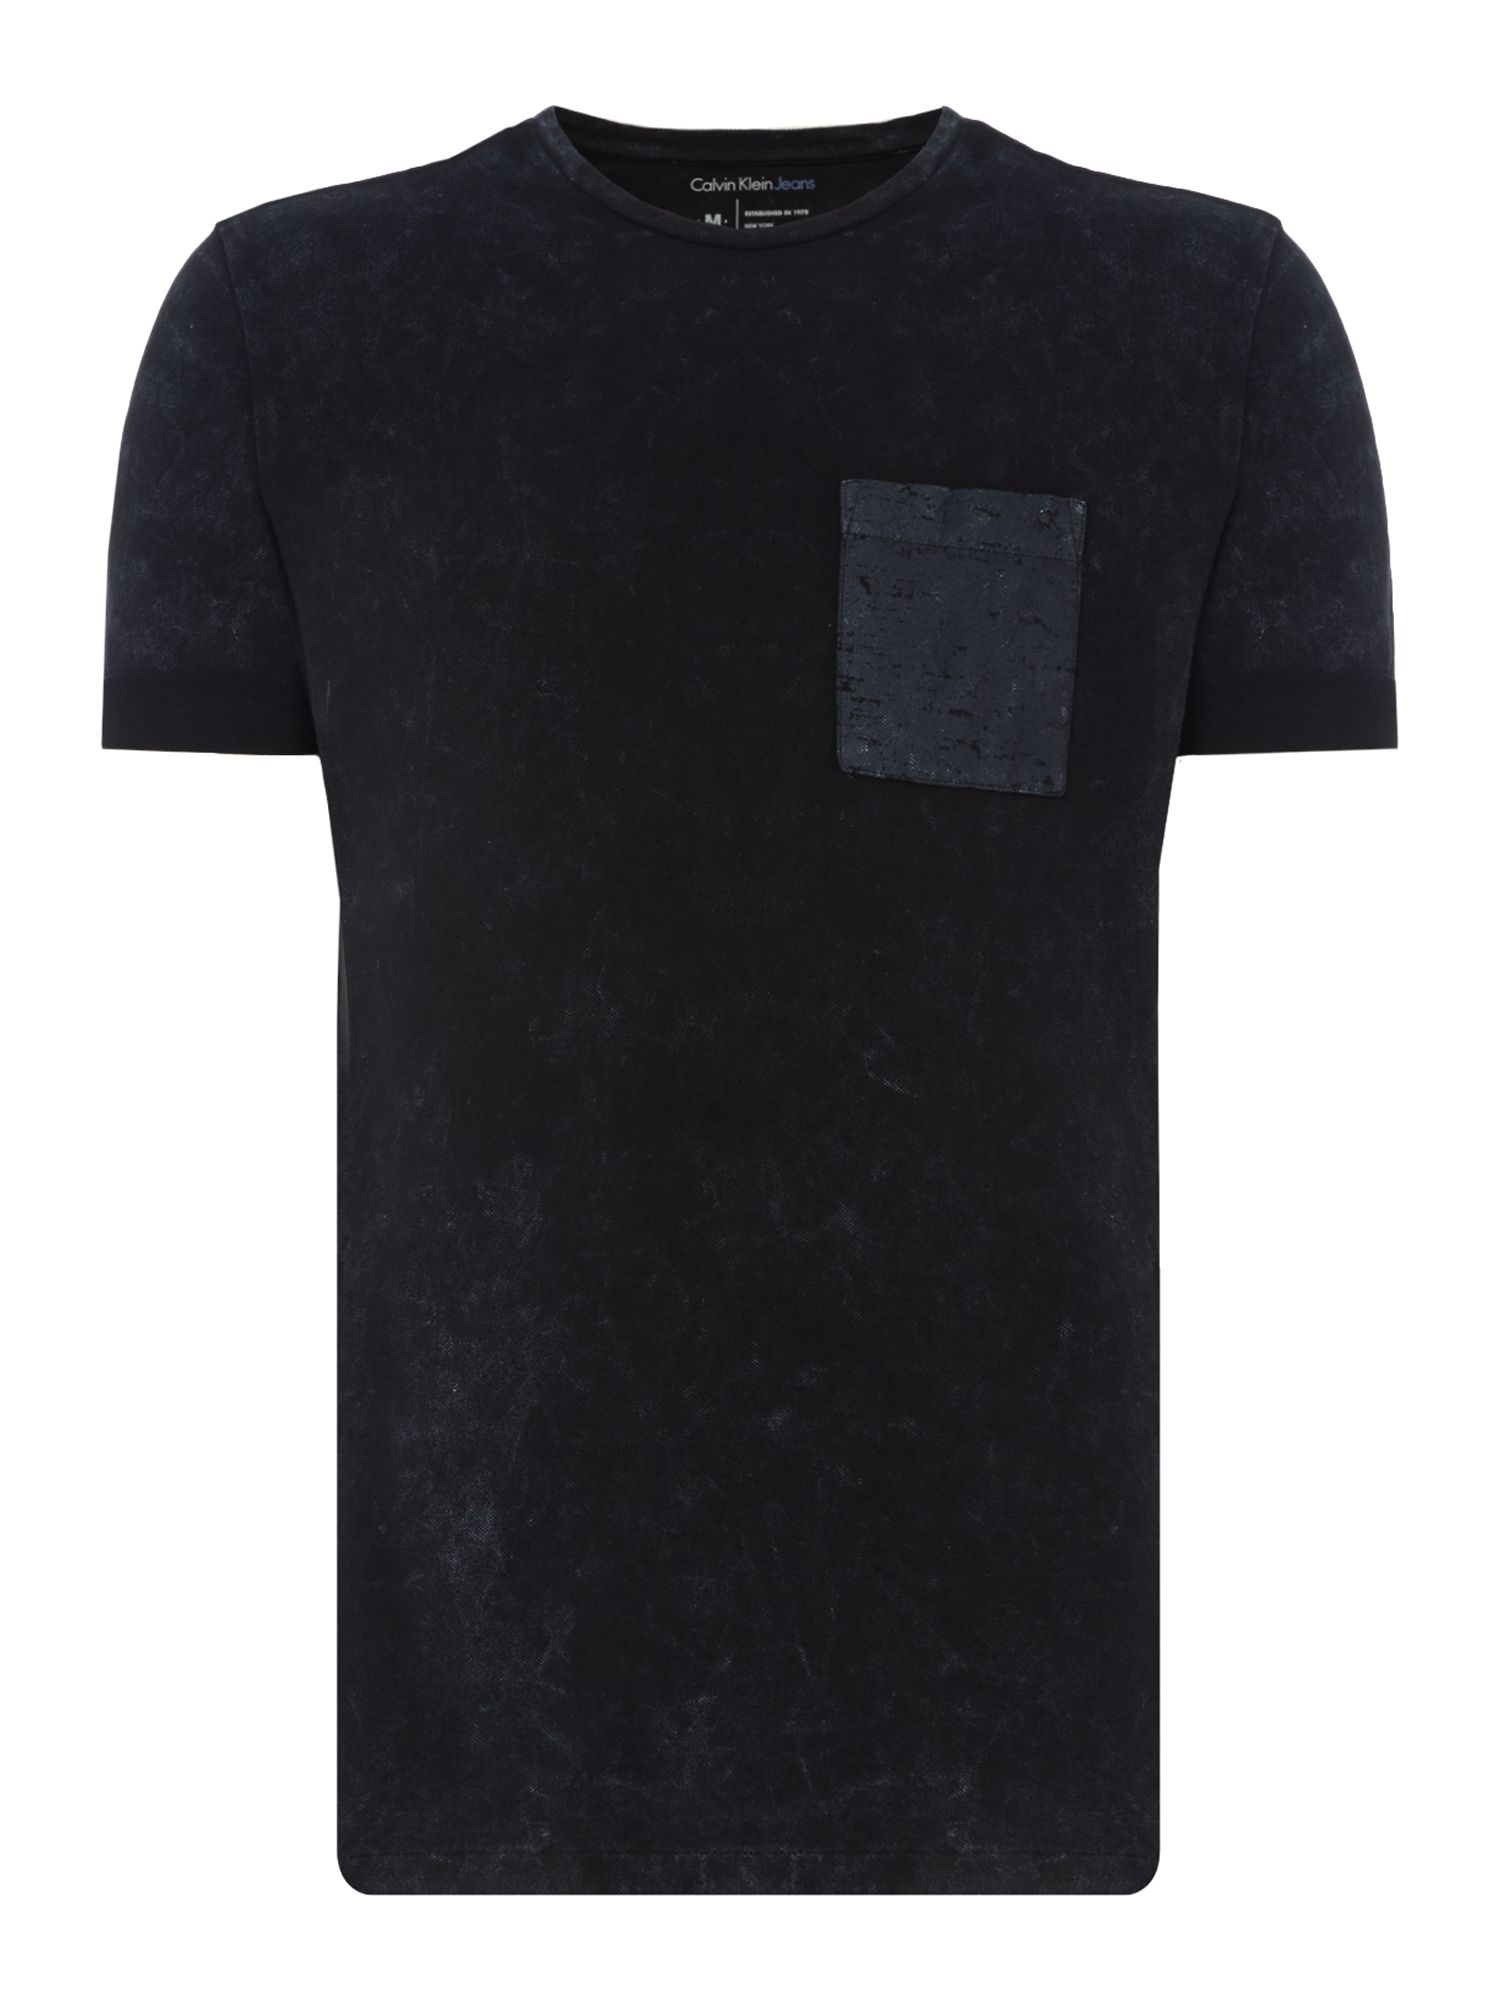 Men's Calvin Klein Braze T-shirt, Black